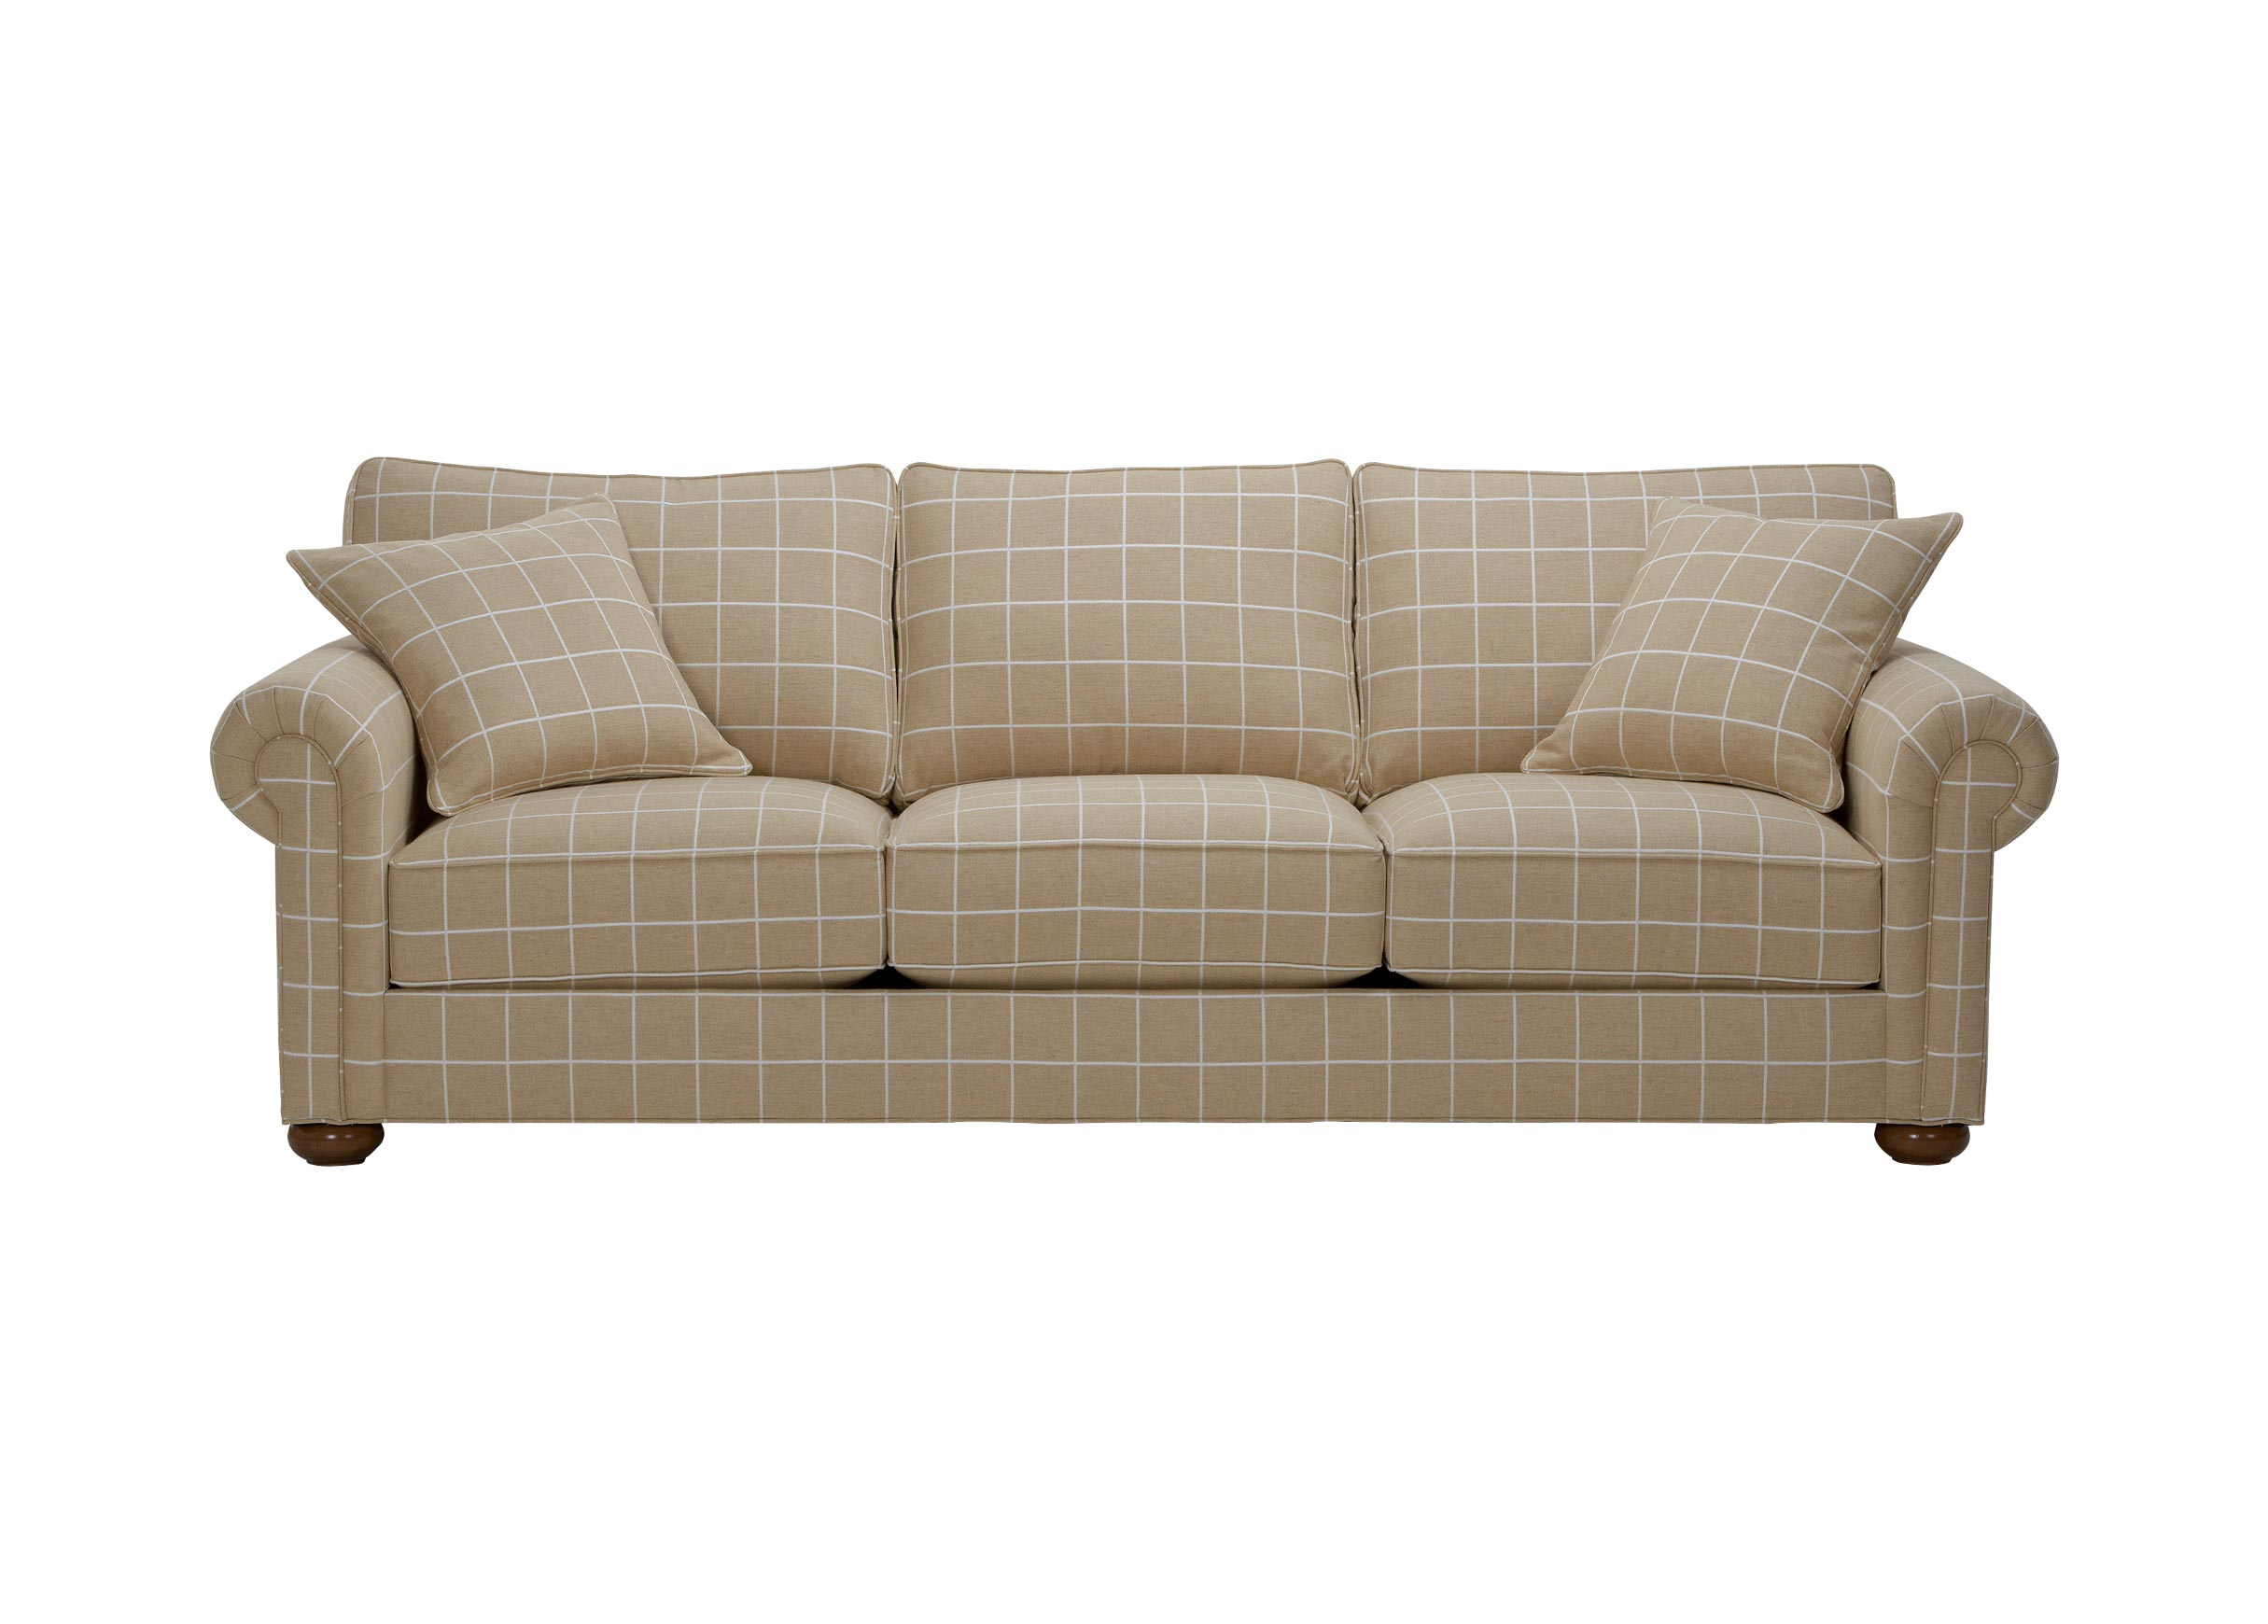 Richmond sofa sofas loveseats for Ethan allen furniture